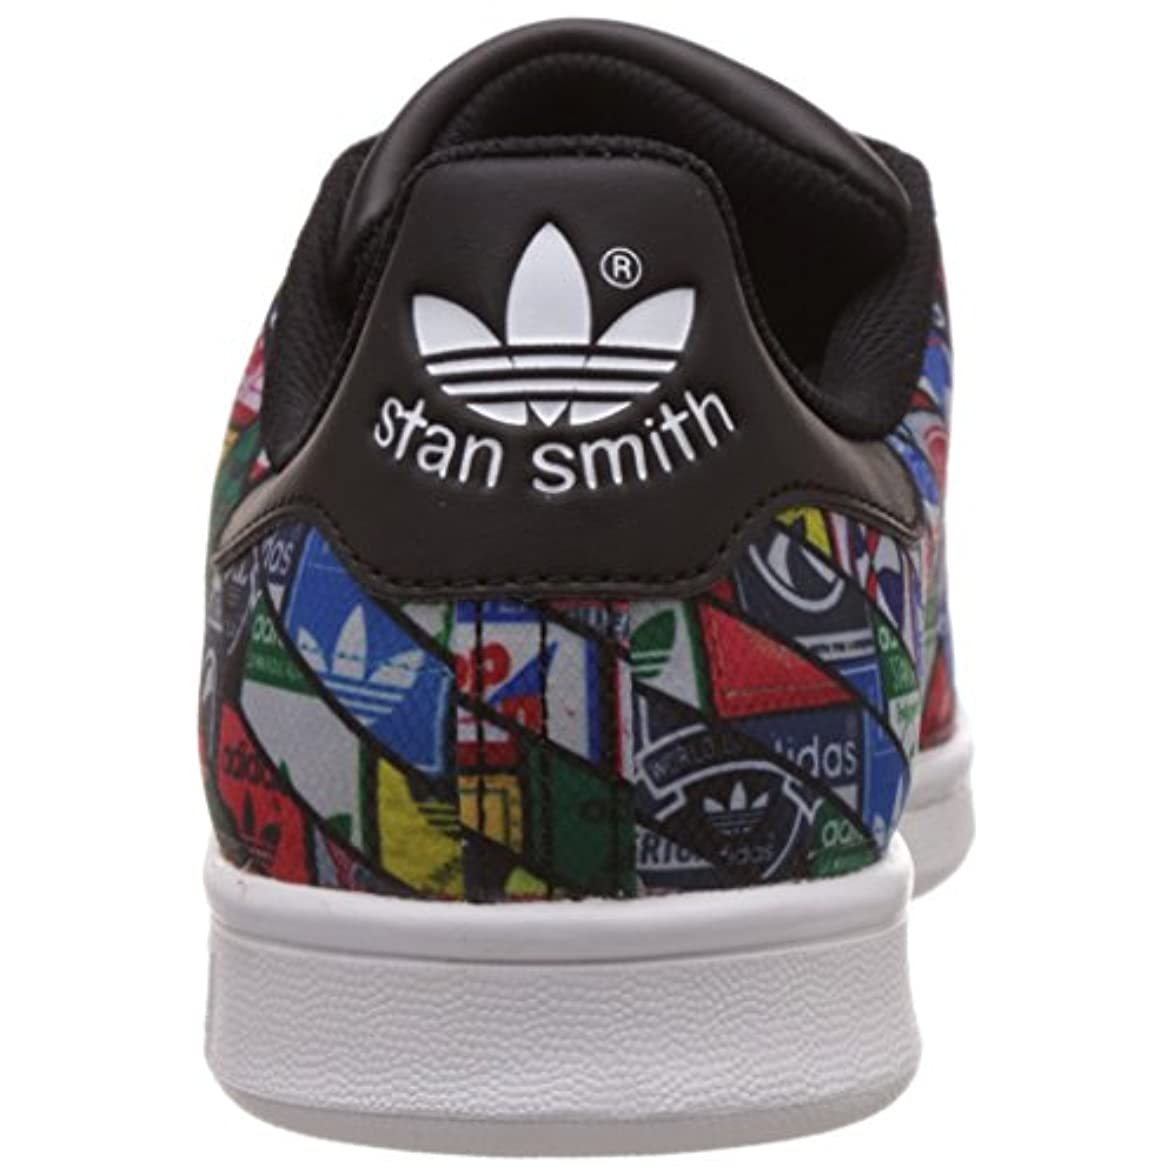 Adidas Originals Stan Smith Sneakers Unisex – Adulto